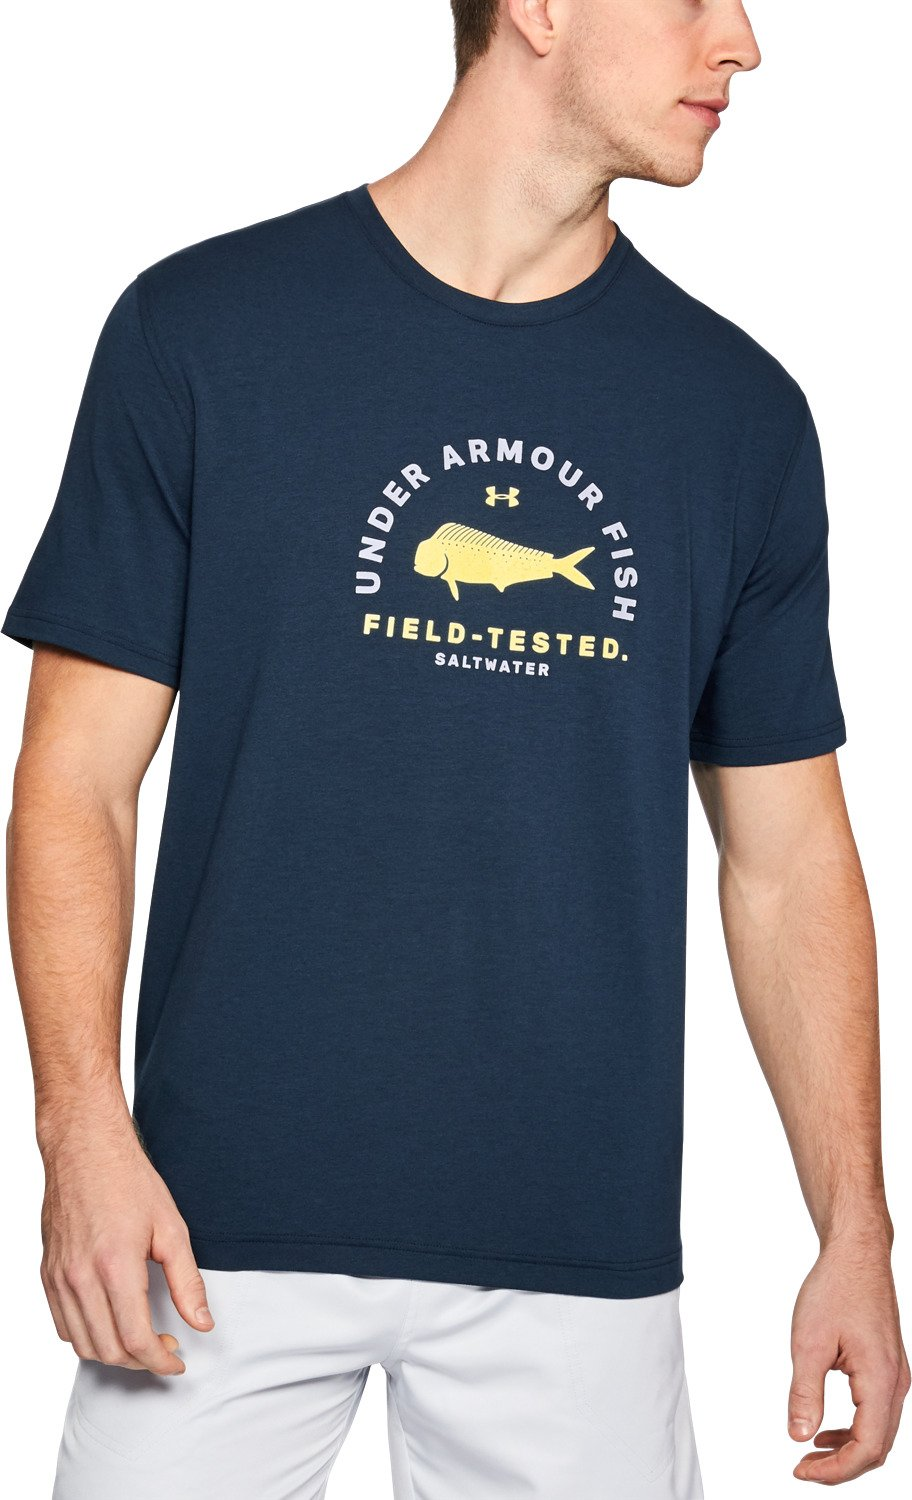 Under Armour Men's Mahi Field Tested T-shirt - view number 1